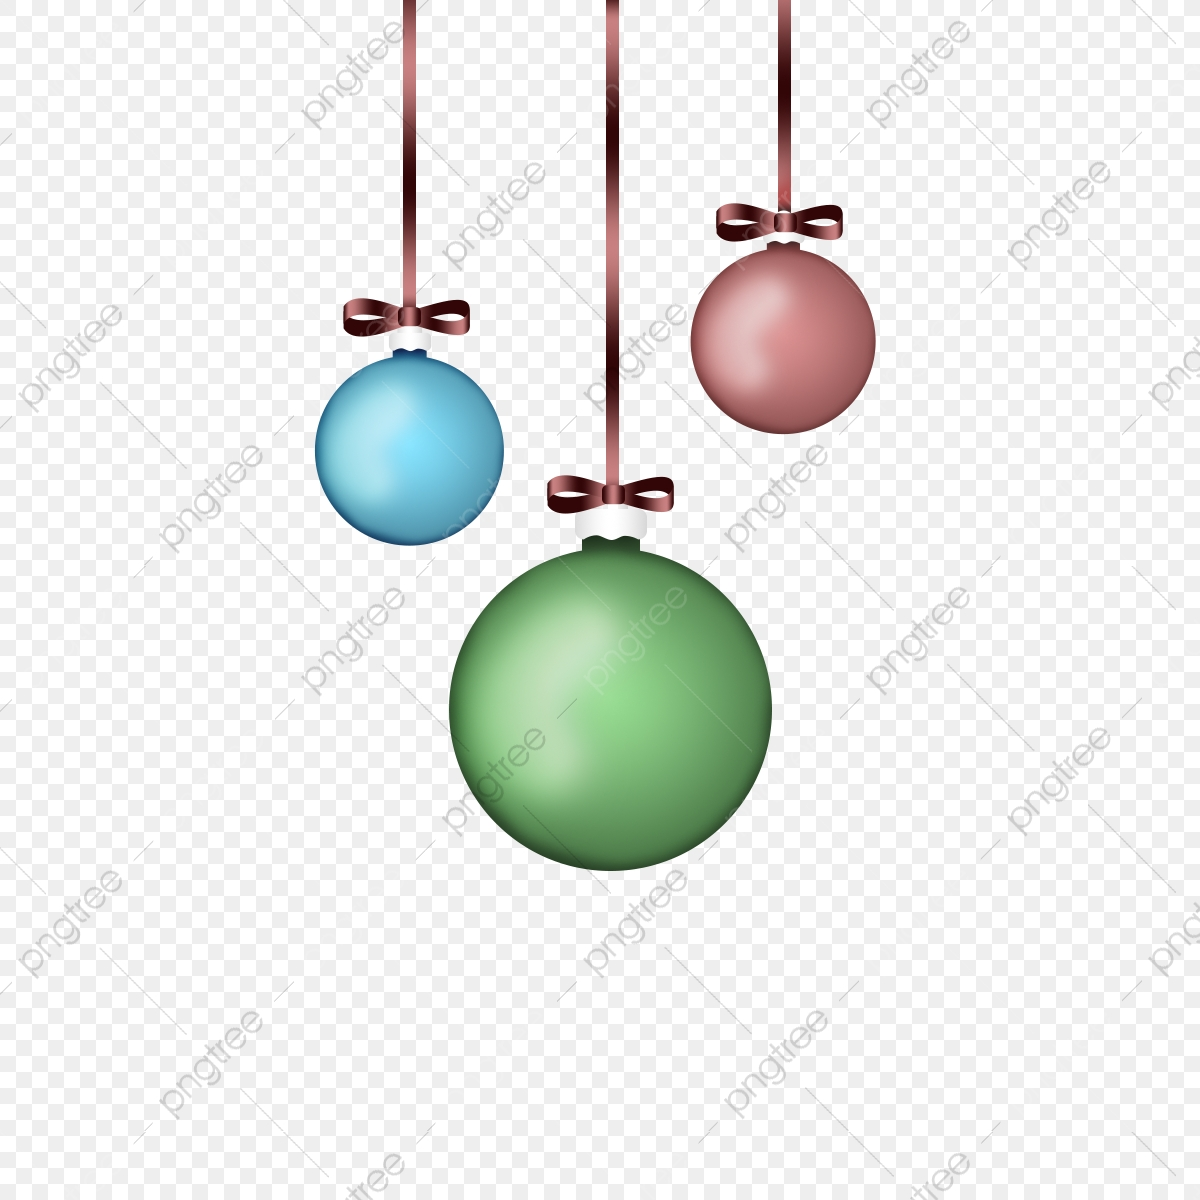 Coloroful Christmas Tree Baubles With Ribbon Colorful Christmas Tree Png Transparent Clipart Image And Psd File For Free Download